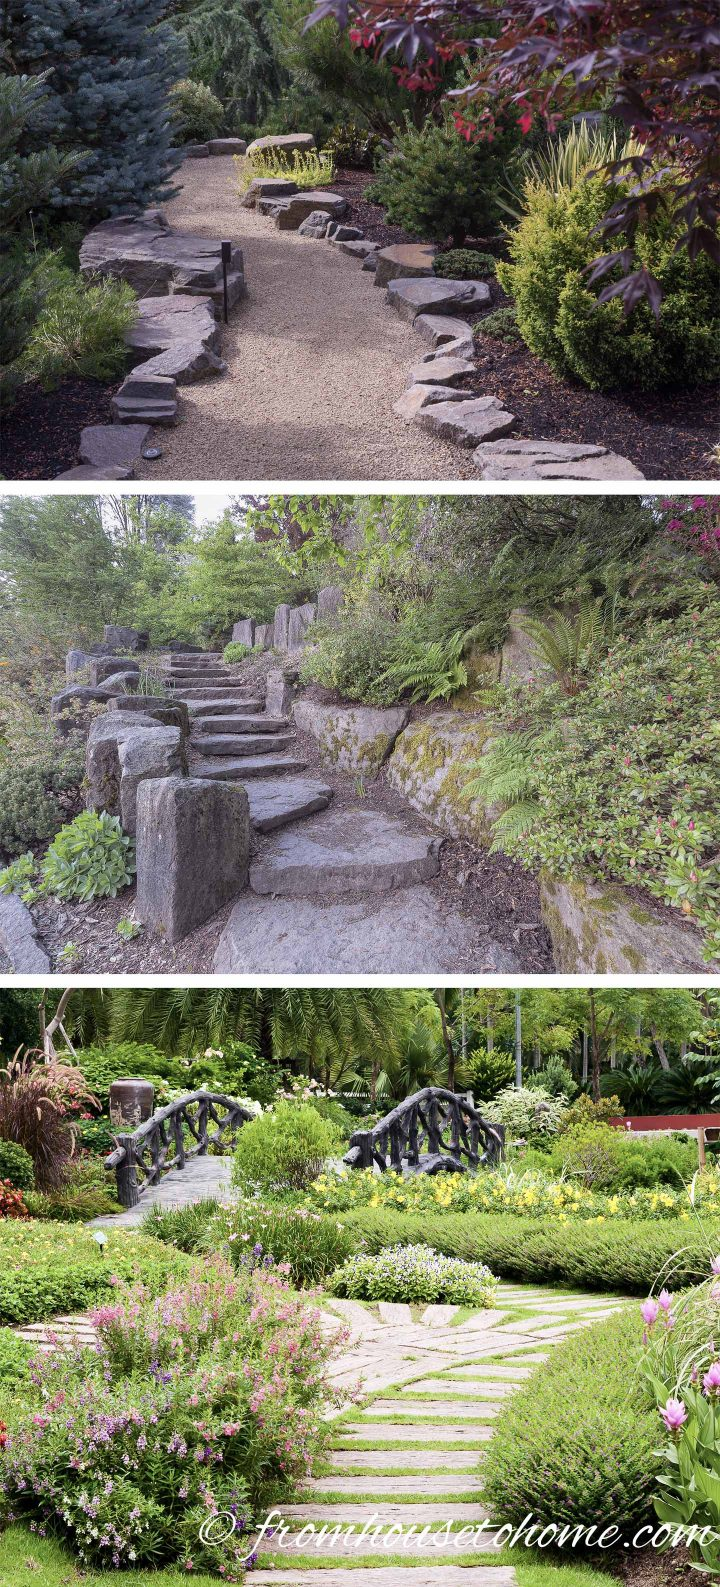 Adding paths to your plan gives people a destination (images via Jamie Hooper, jpldesigns, sutichak / stock.adobe.com)